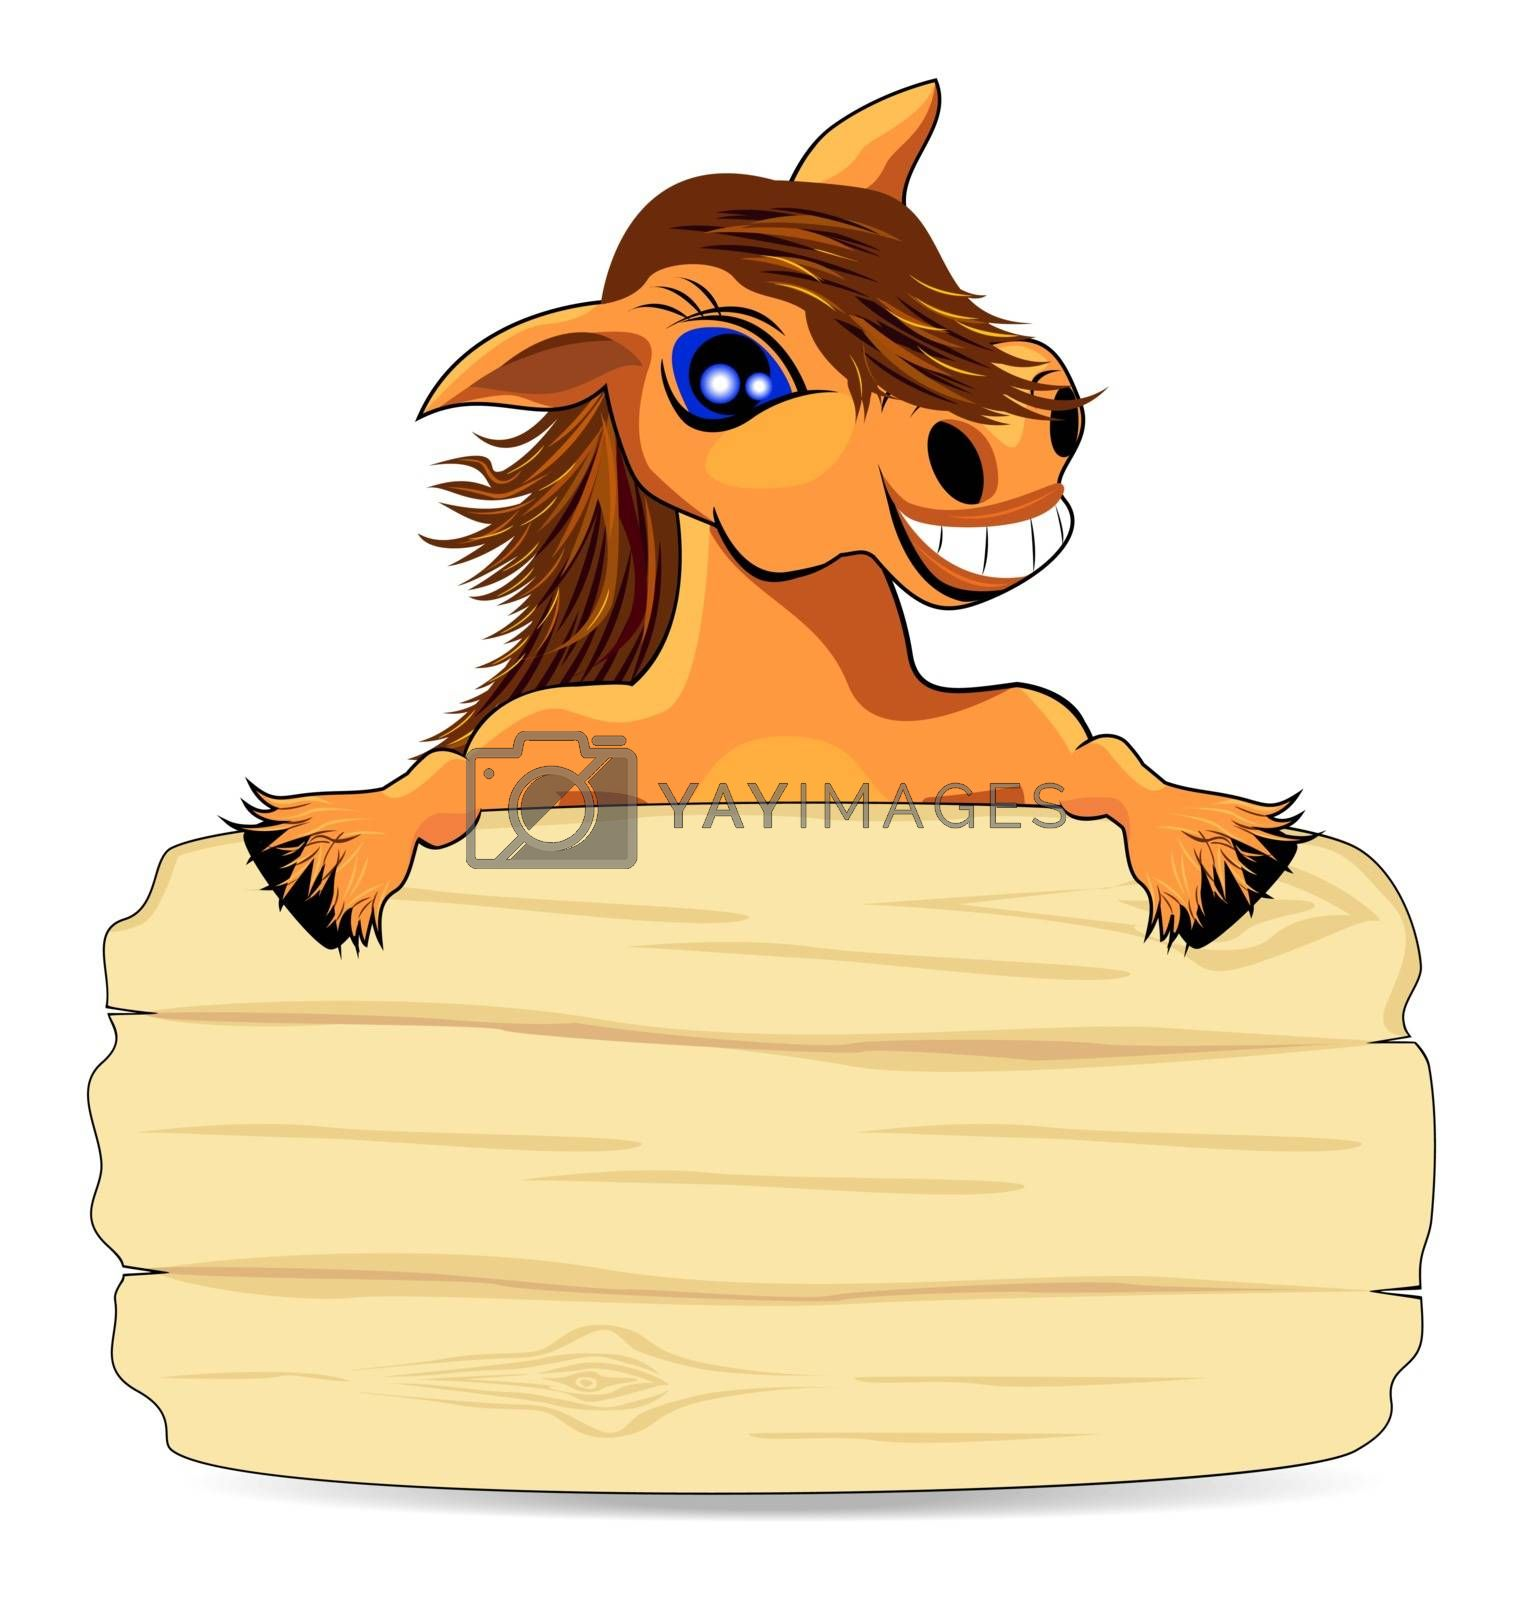 Cheerful smiling horse peeking out from behind a wooden fence.